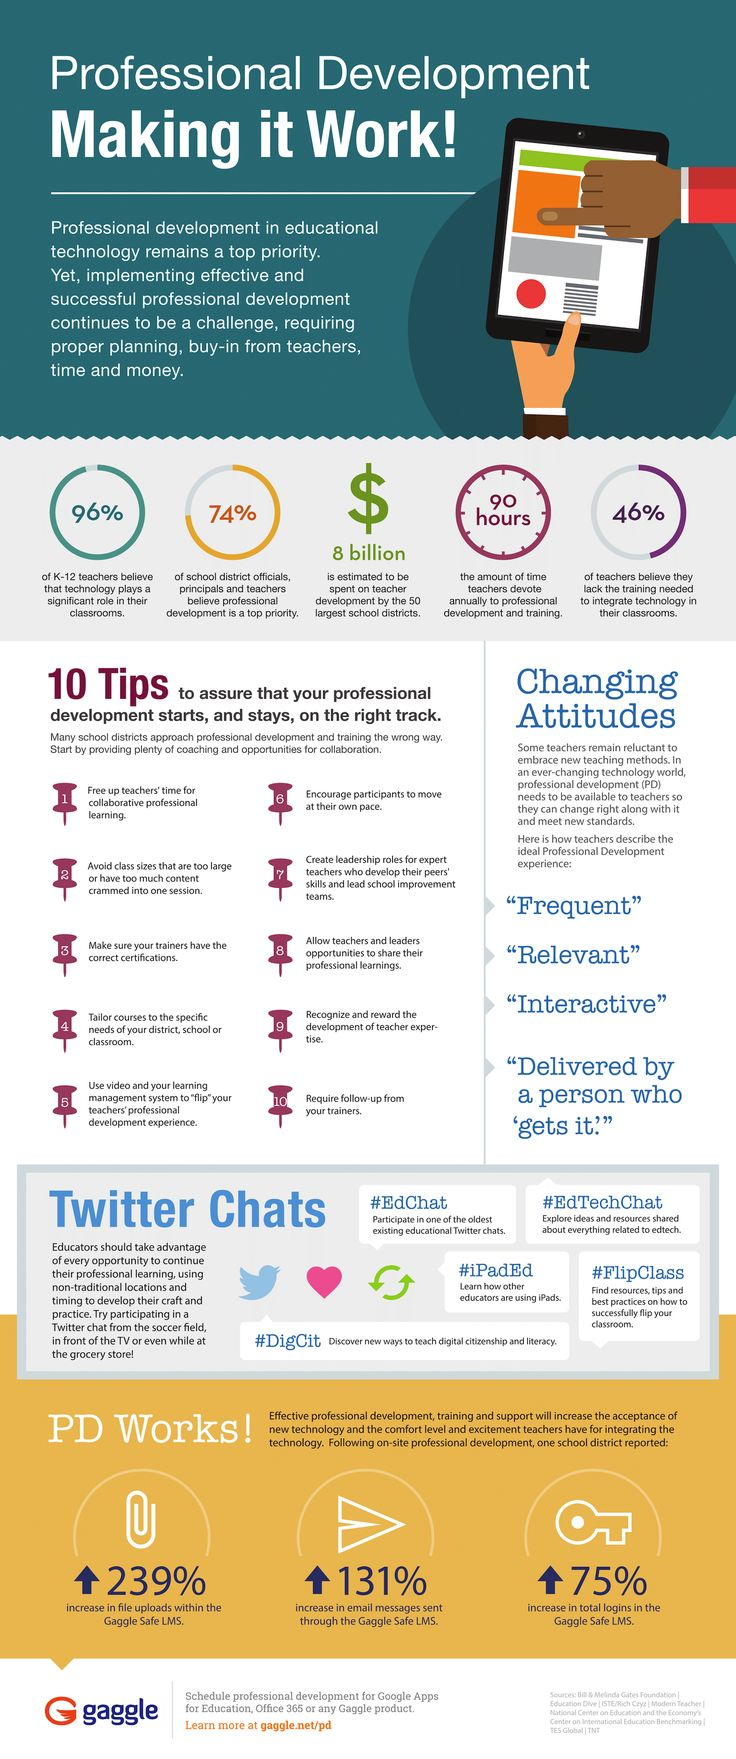 How to Make Professional Development Work Infographic - http://elearninginfographics.com/make-professional-development-work-infographic/